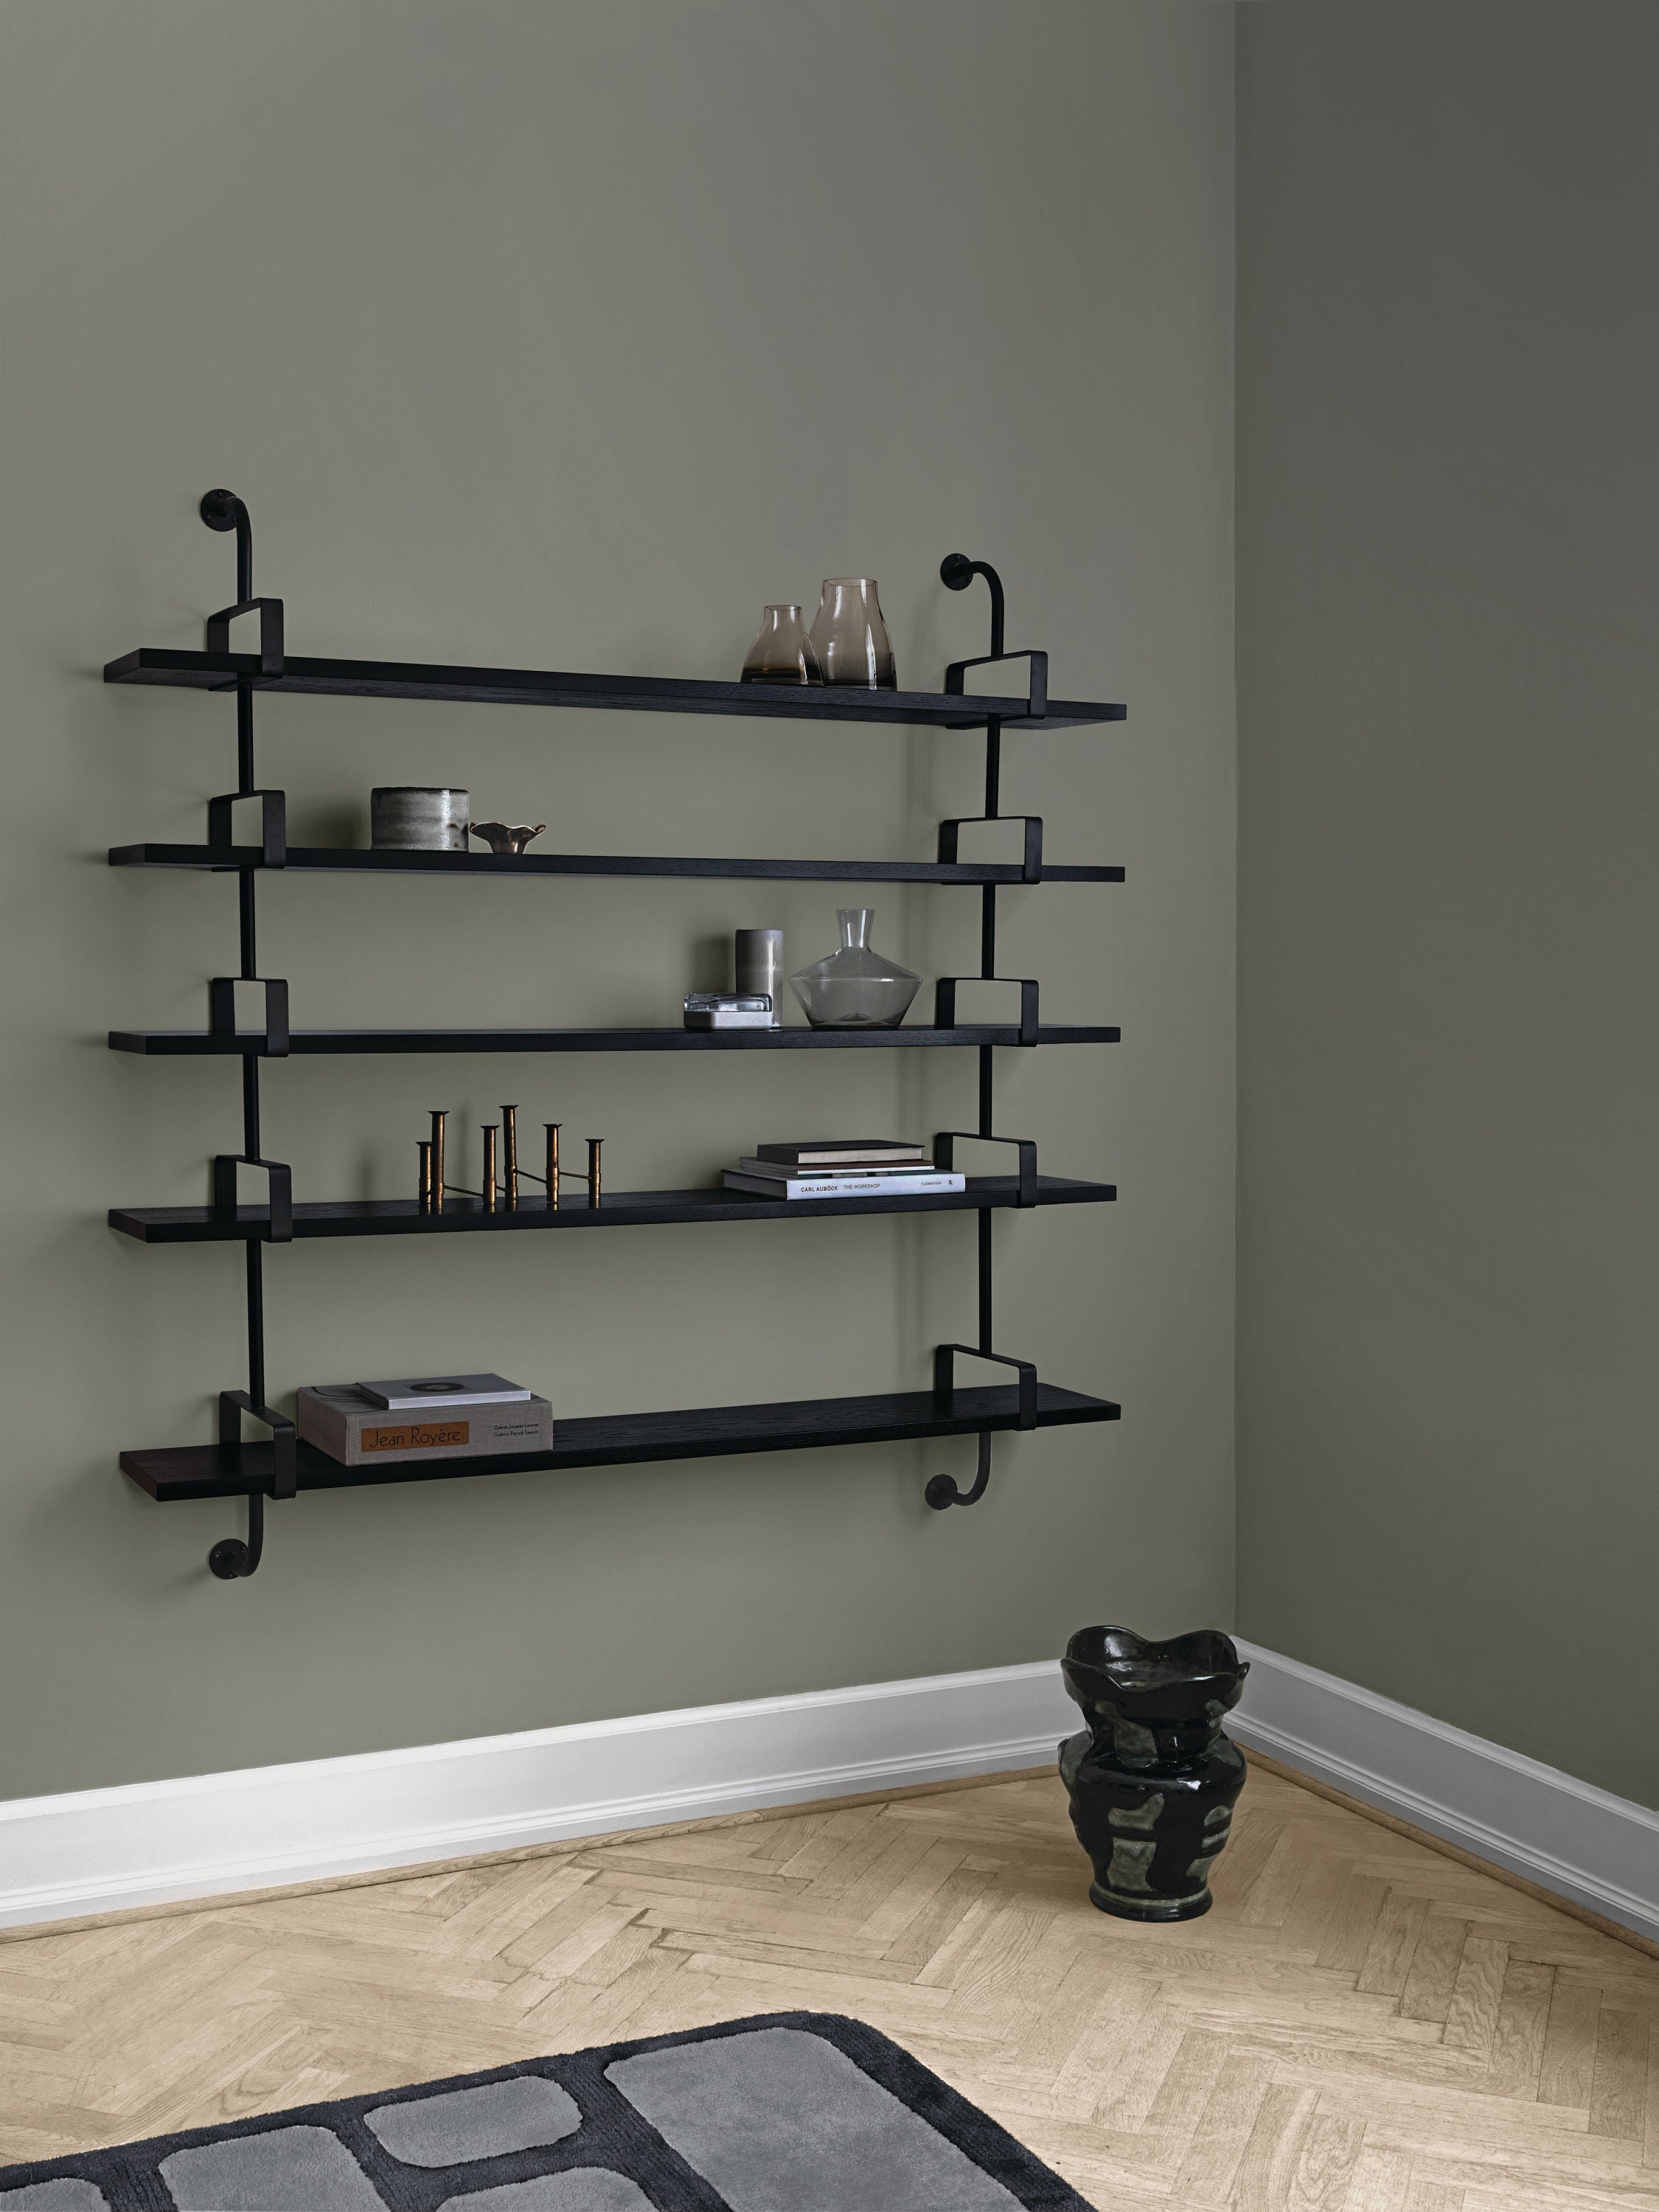 Démon Shelf - 2 Brackets - 95 cm 3 shelves, Walnut shell fra GUBI